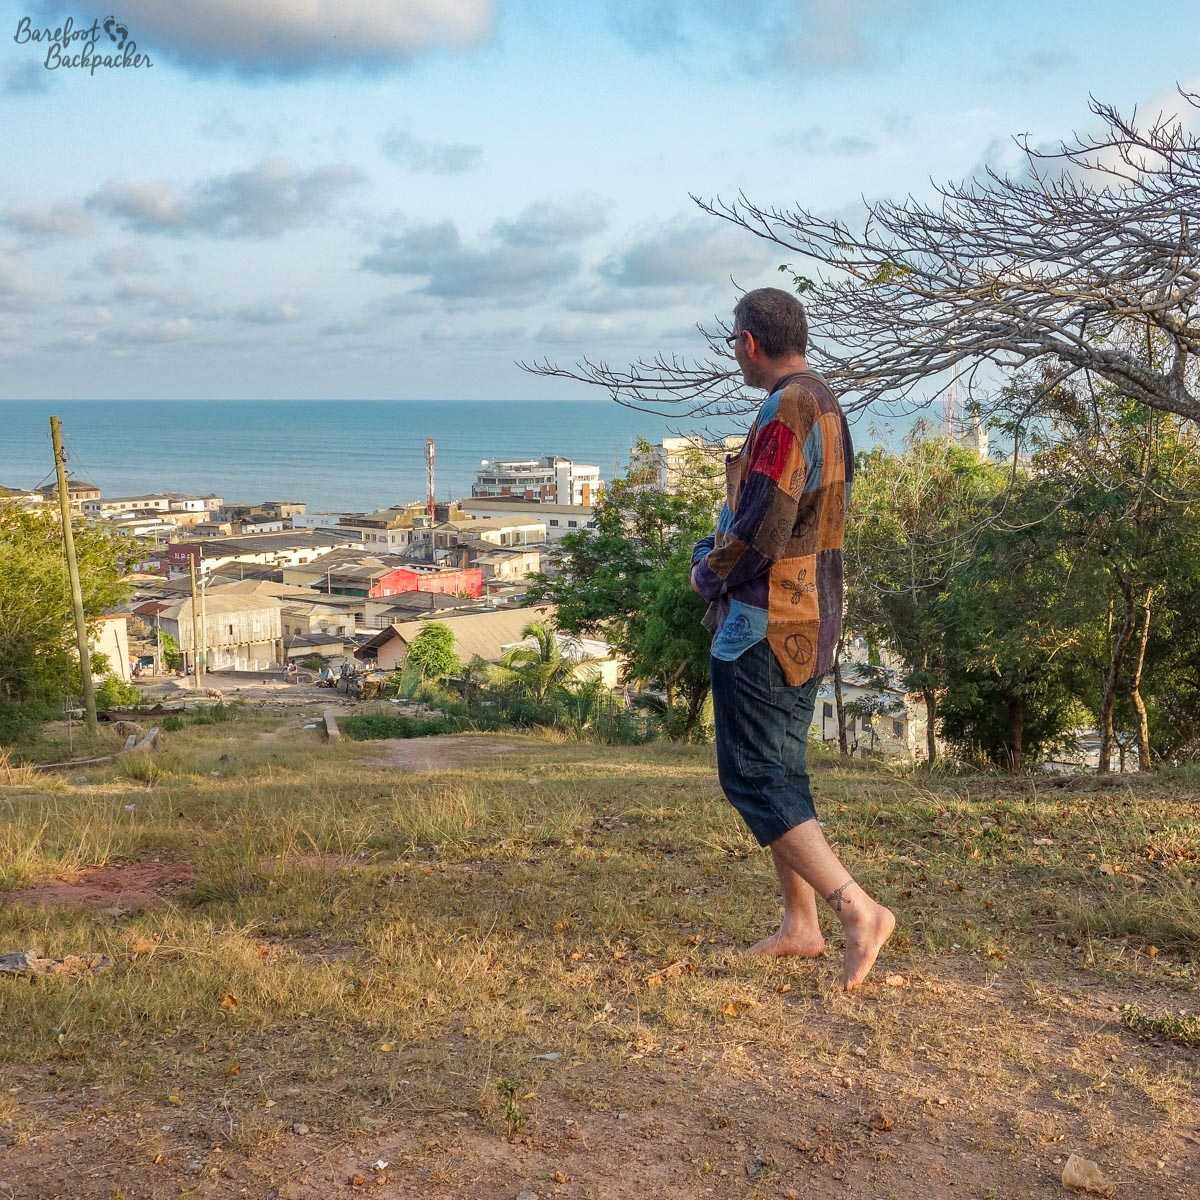 Standing barefoot, overlooking the city of Cape Coast, in Ghana